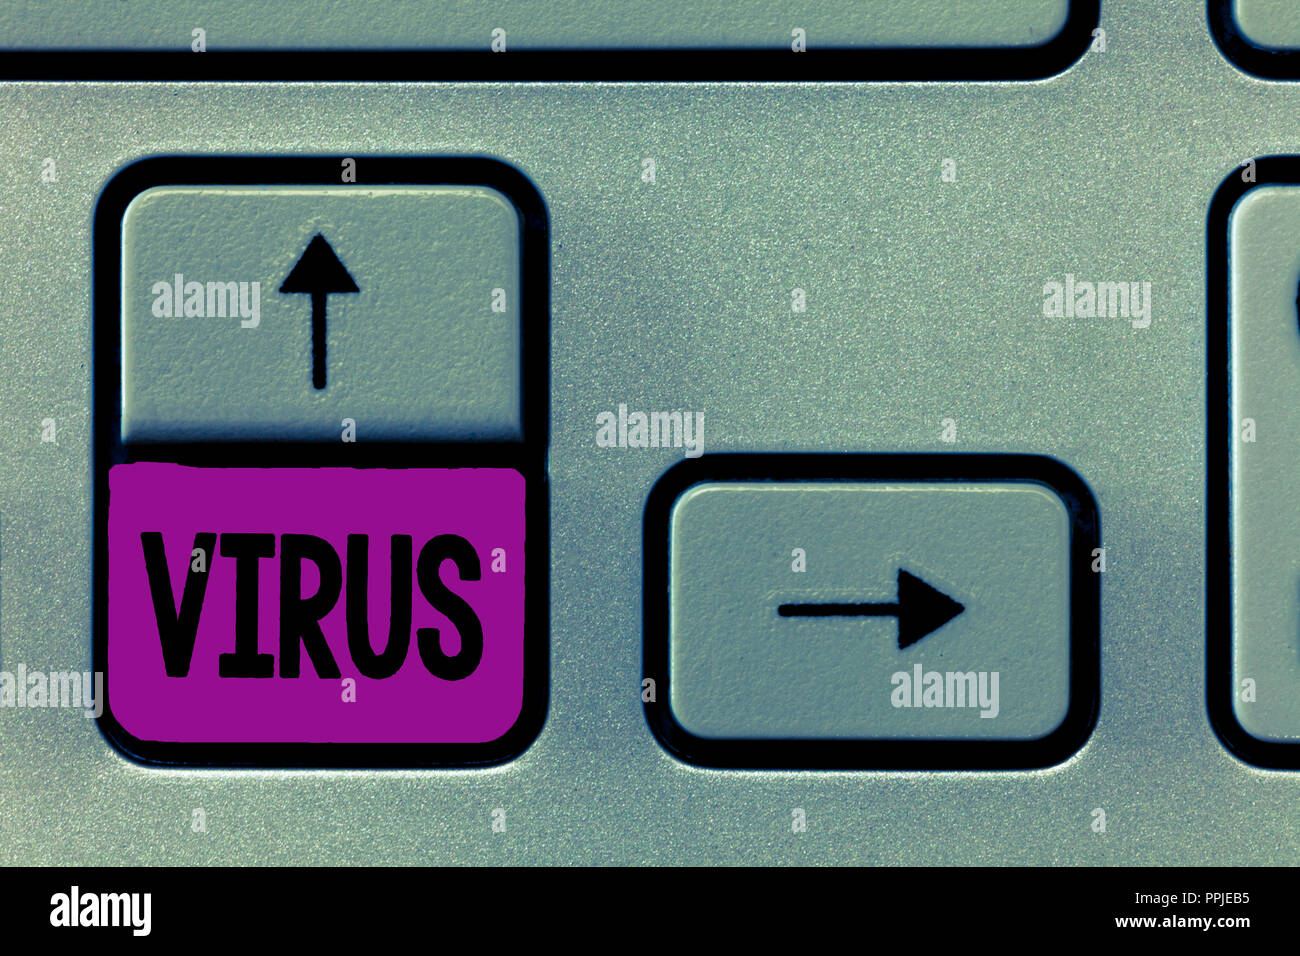 Word writing text Virus. Business concept for infective agent that consists nucleic acid molecule in protein coat. - Stock Image